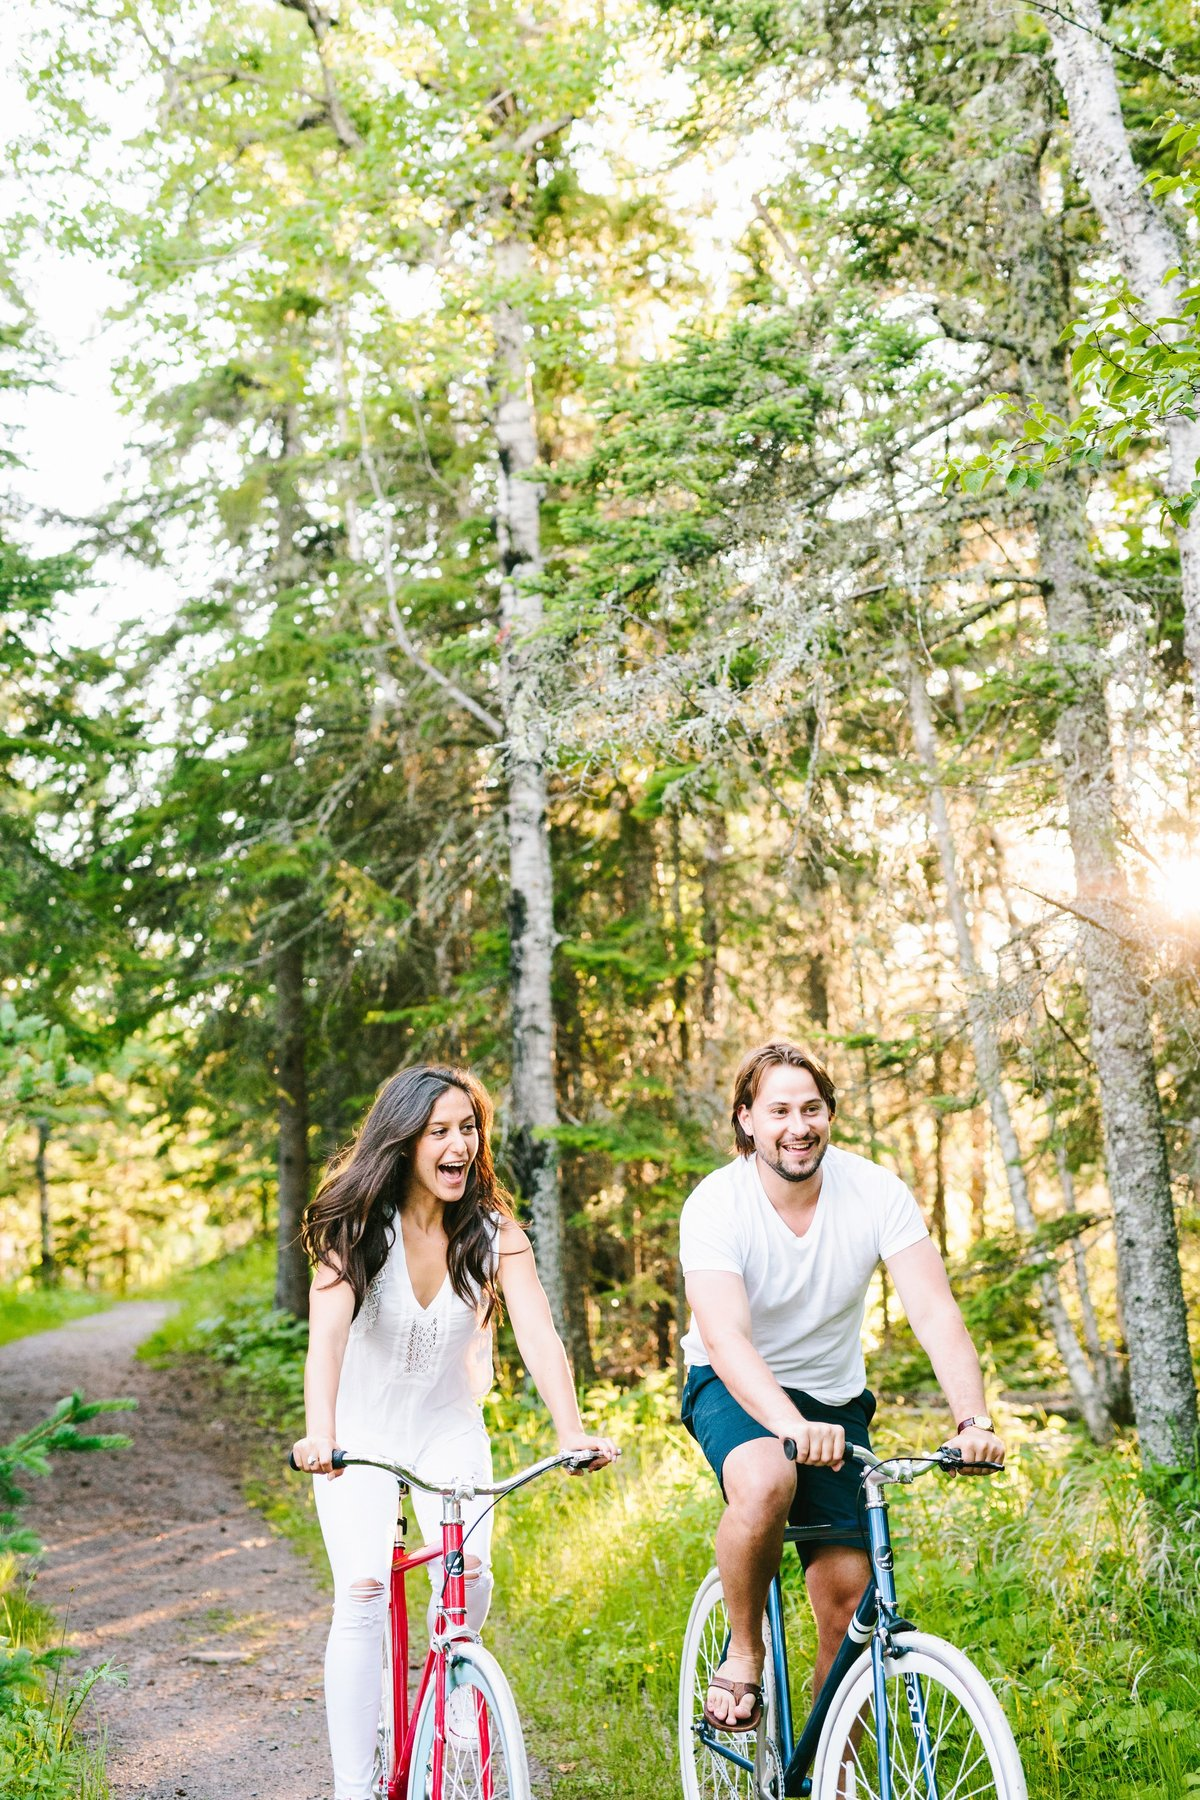 Best California Engagement Photographer-Jodee Debes Photography-160